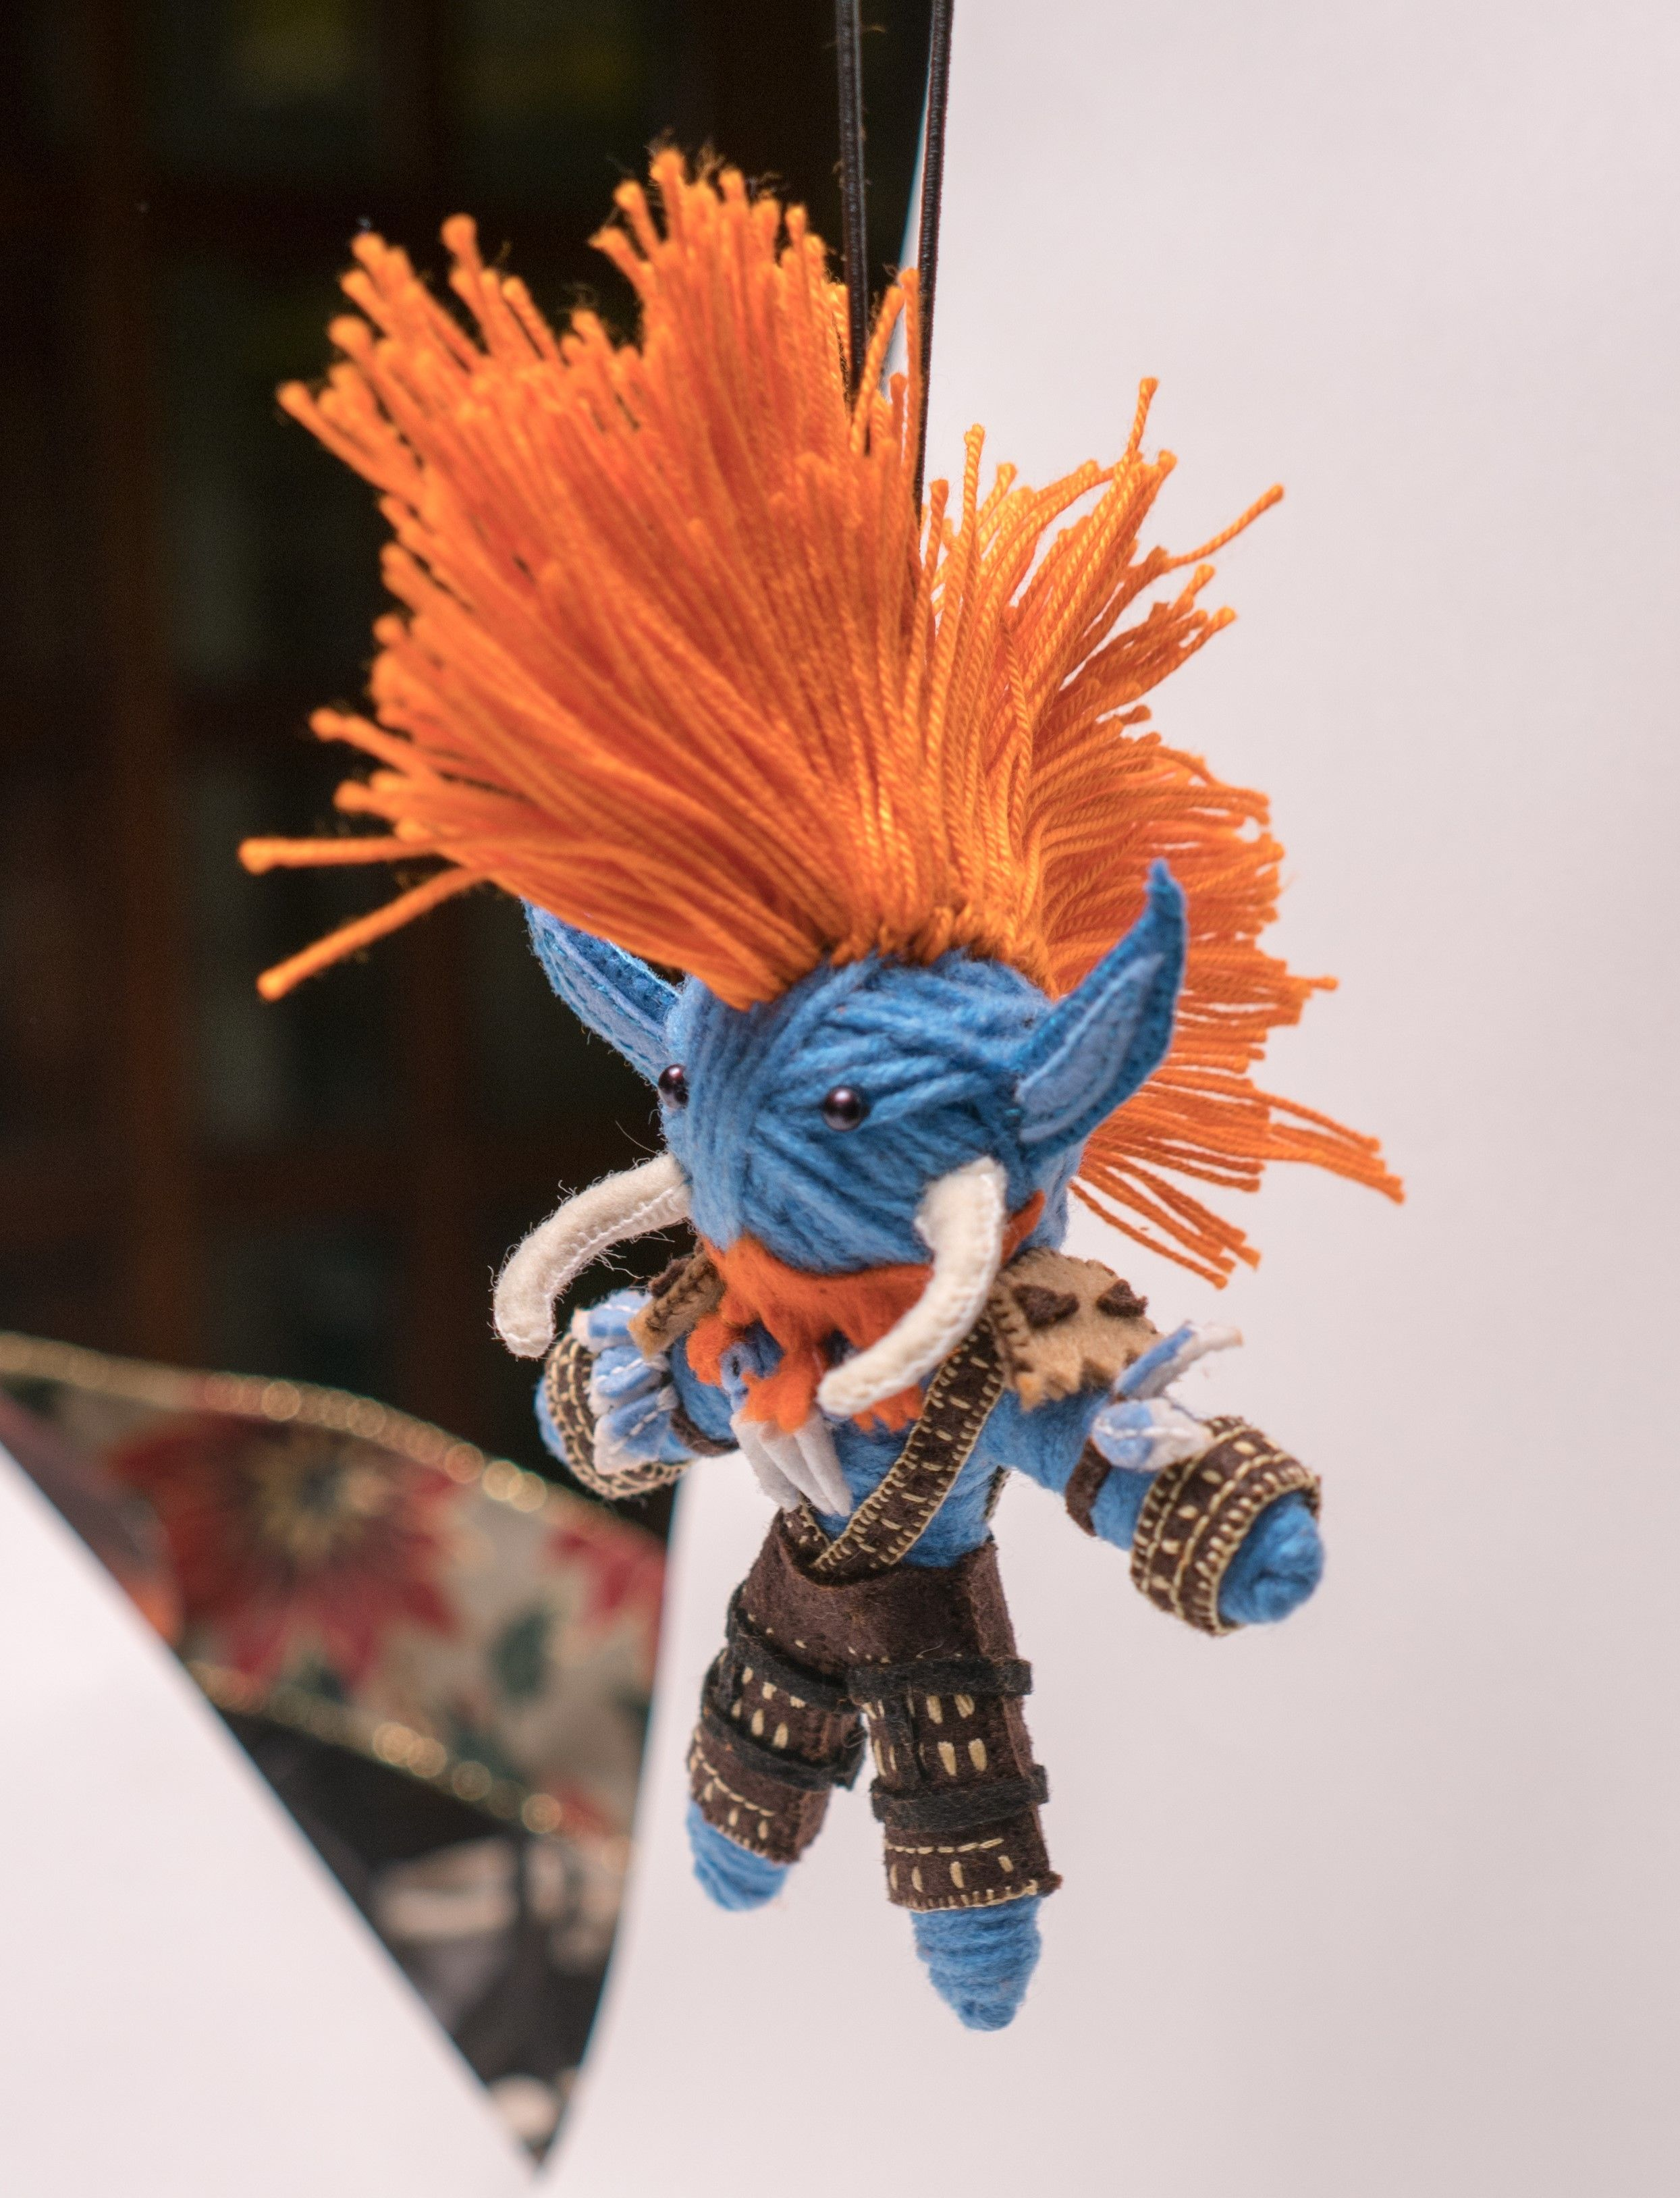 I made a Vol'jin doll for my boyfriend as his christmas gift. #worldofwarcraft #blizzard #Hearthstone #wow #Warcraft #BlizzardCS #gaming